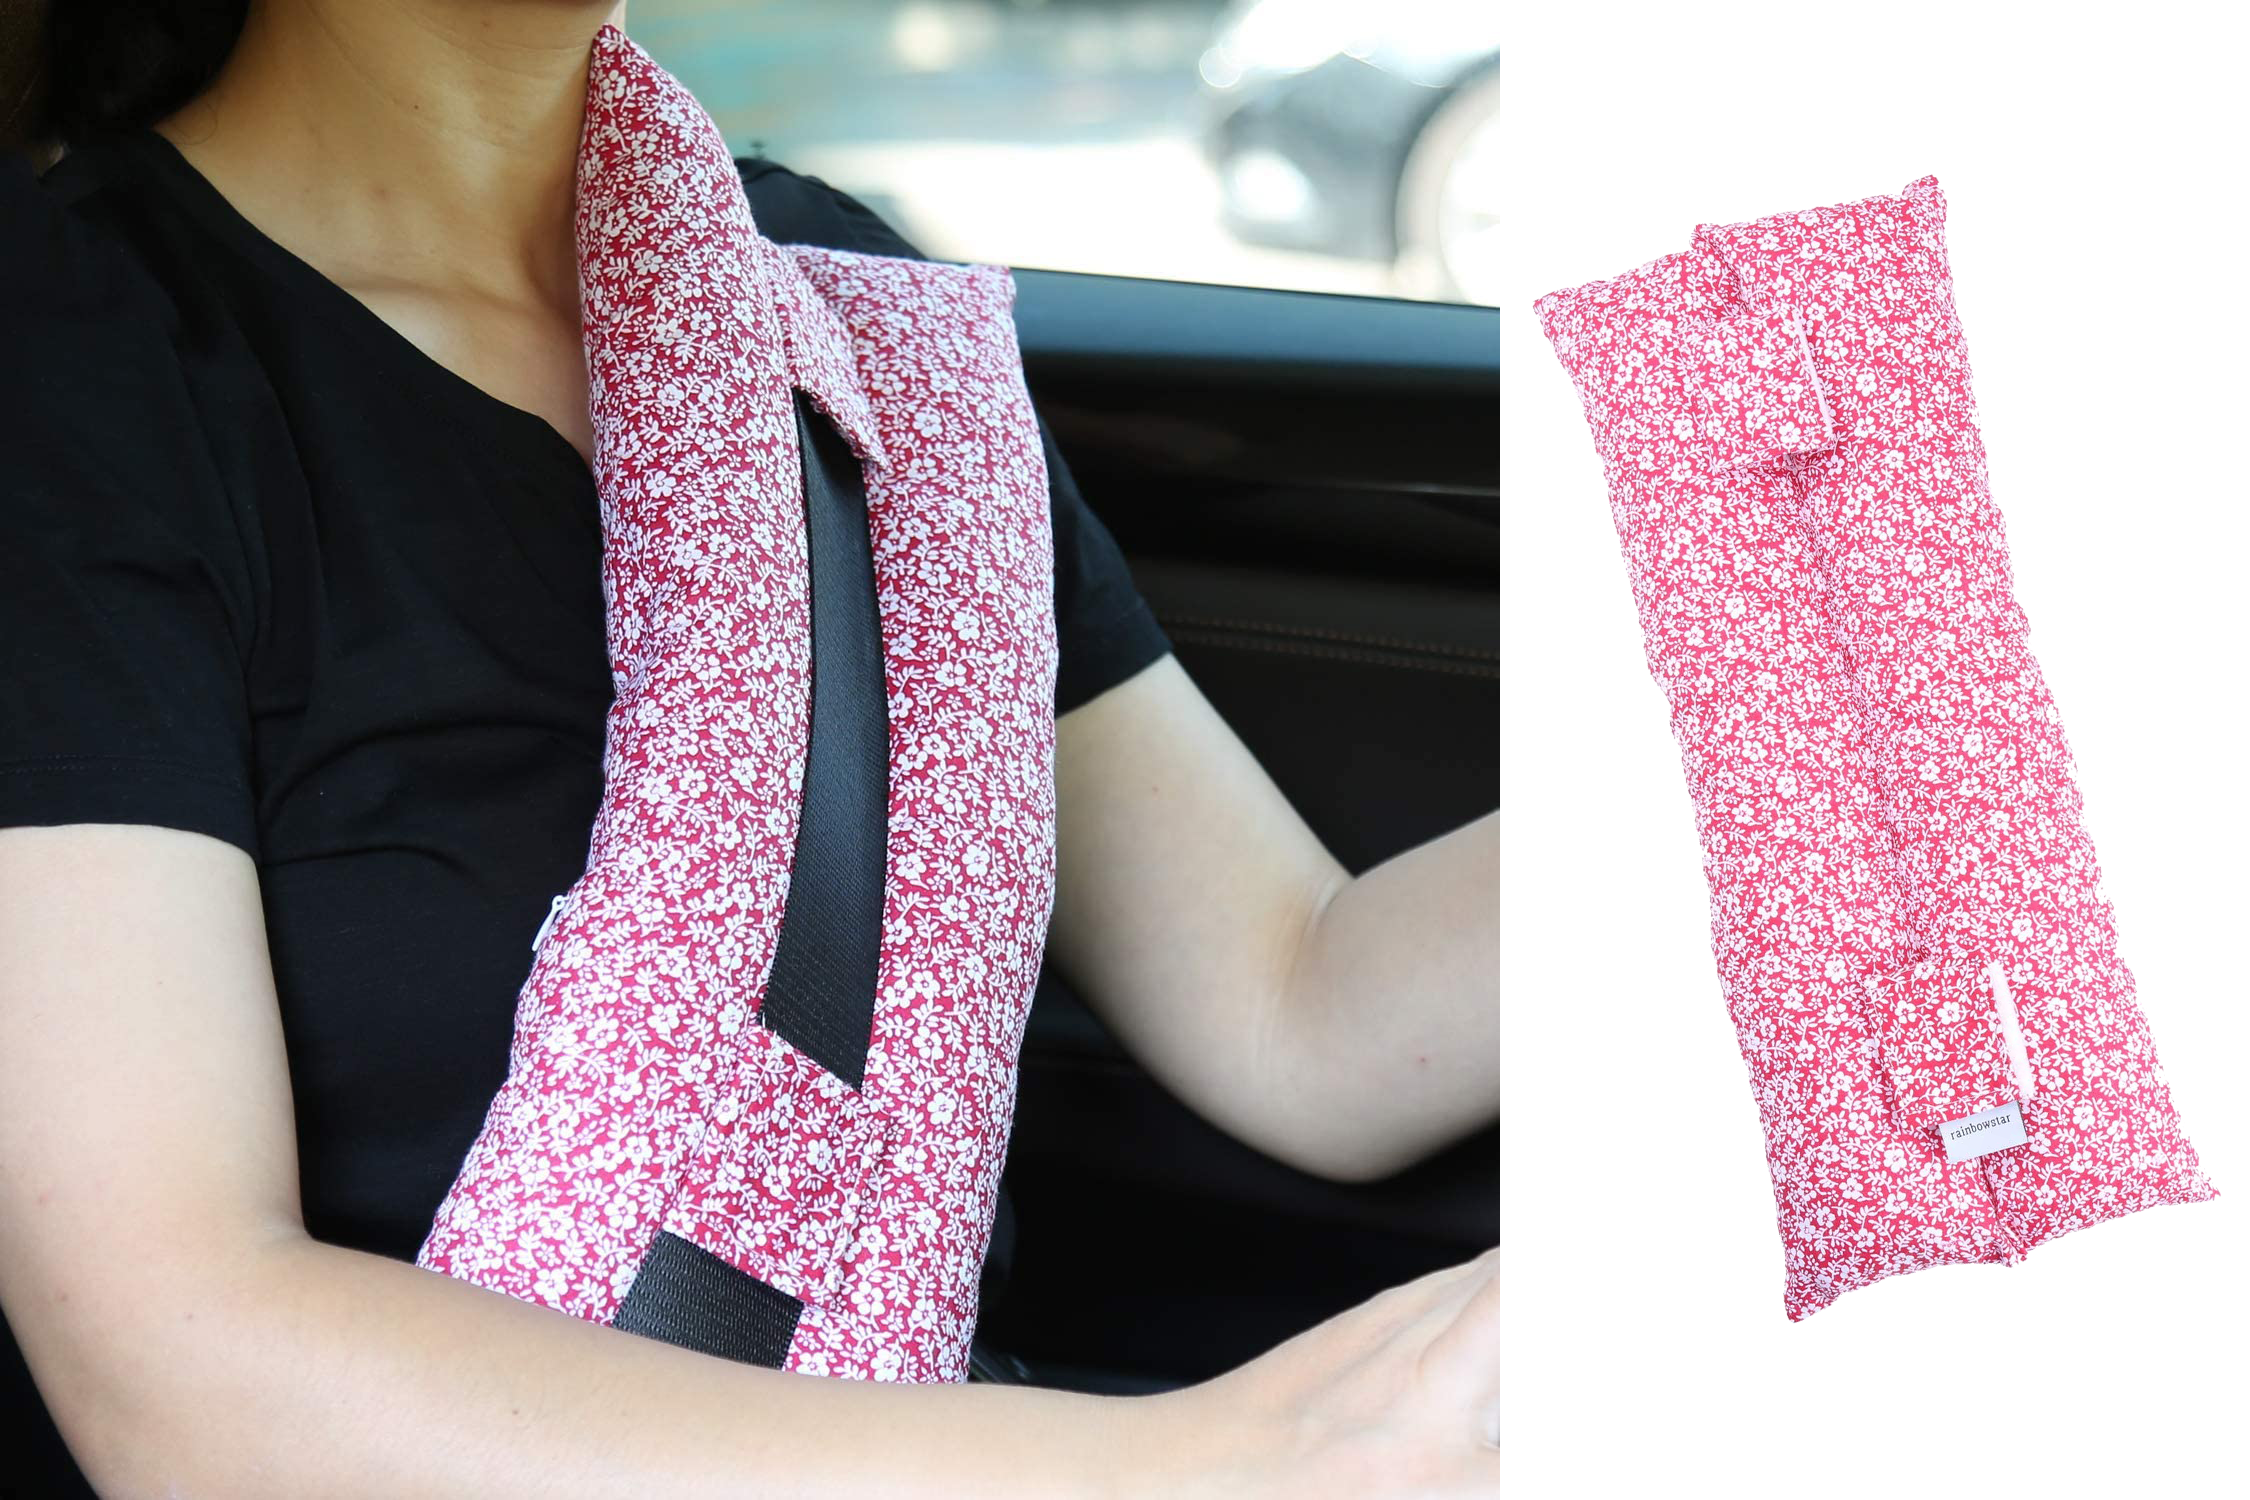 Seatbelt Pillows for Post-Surgery Comfort Mastectomy Breast Cancer